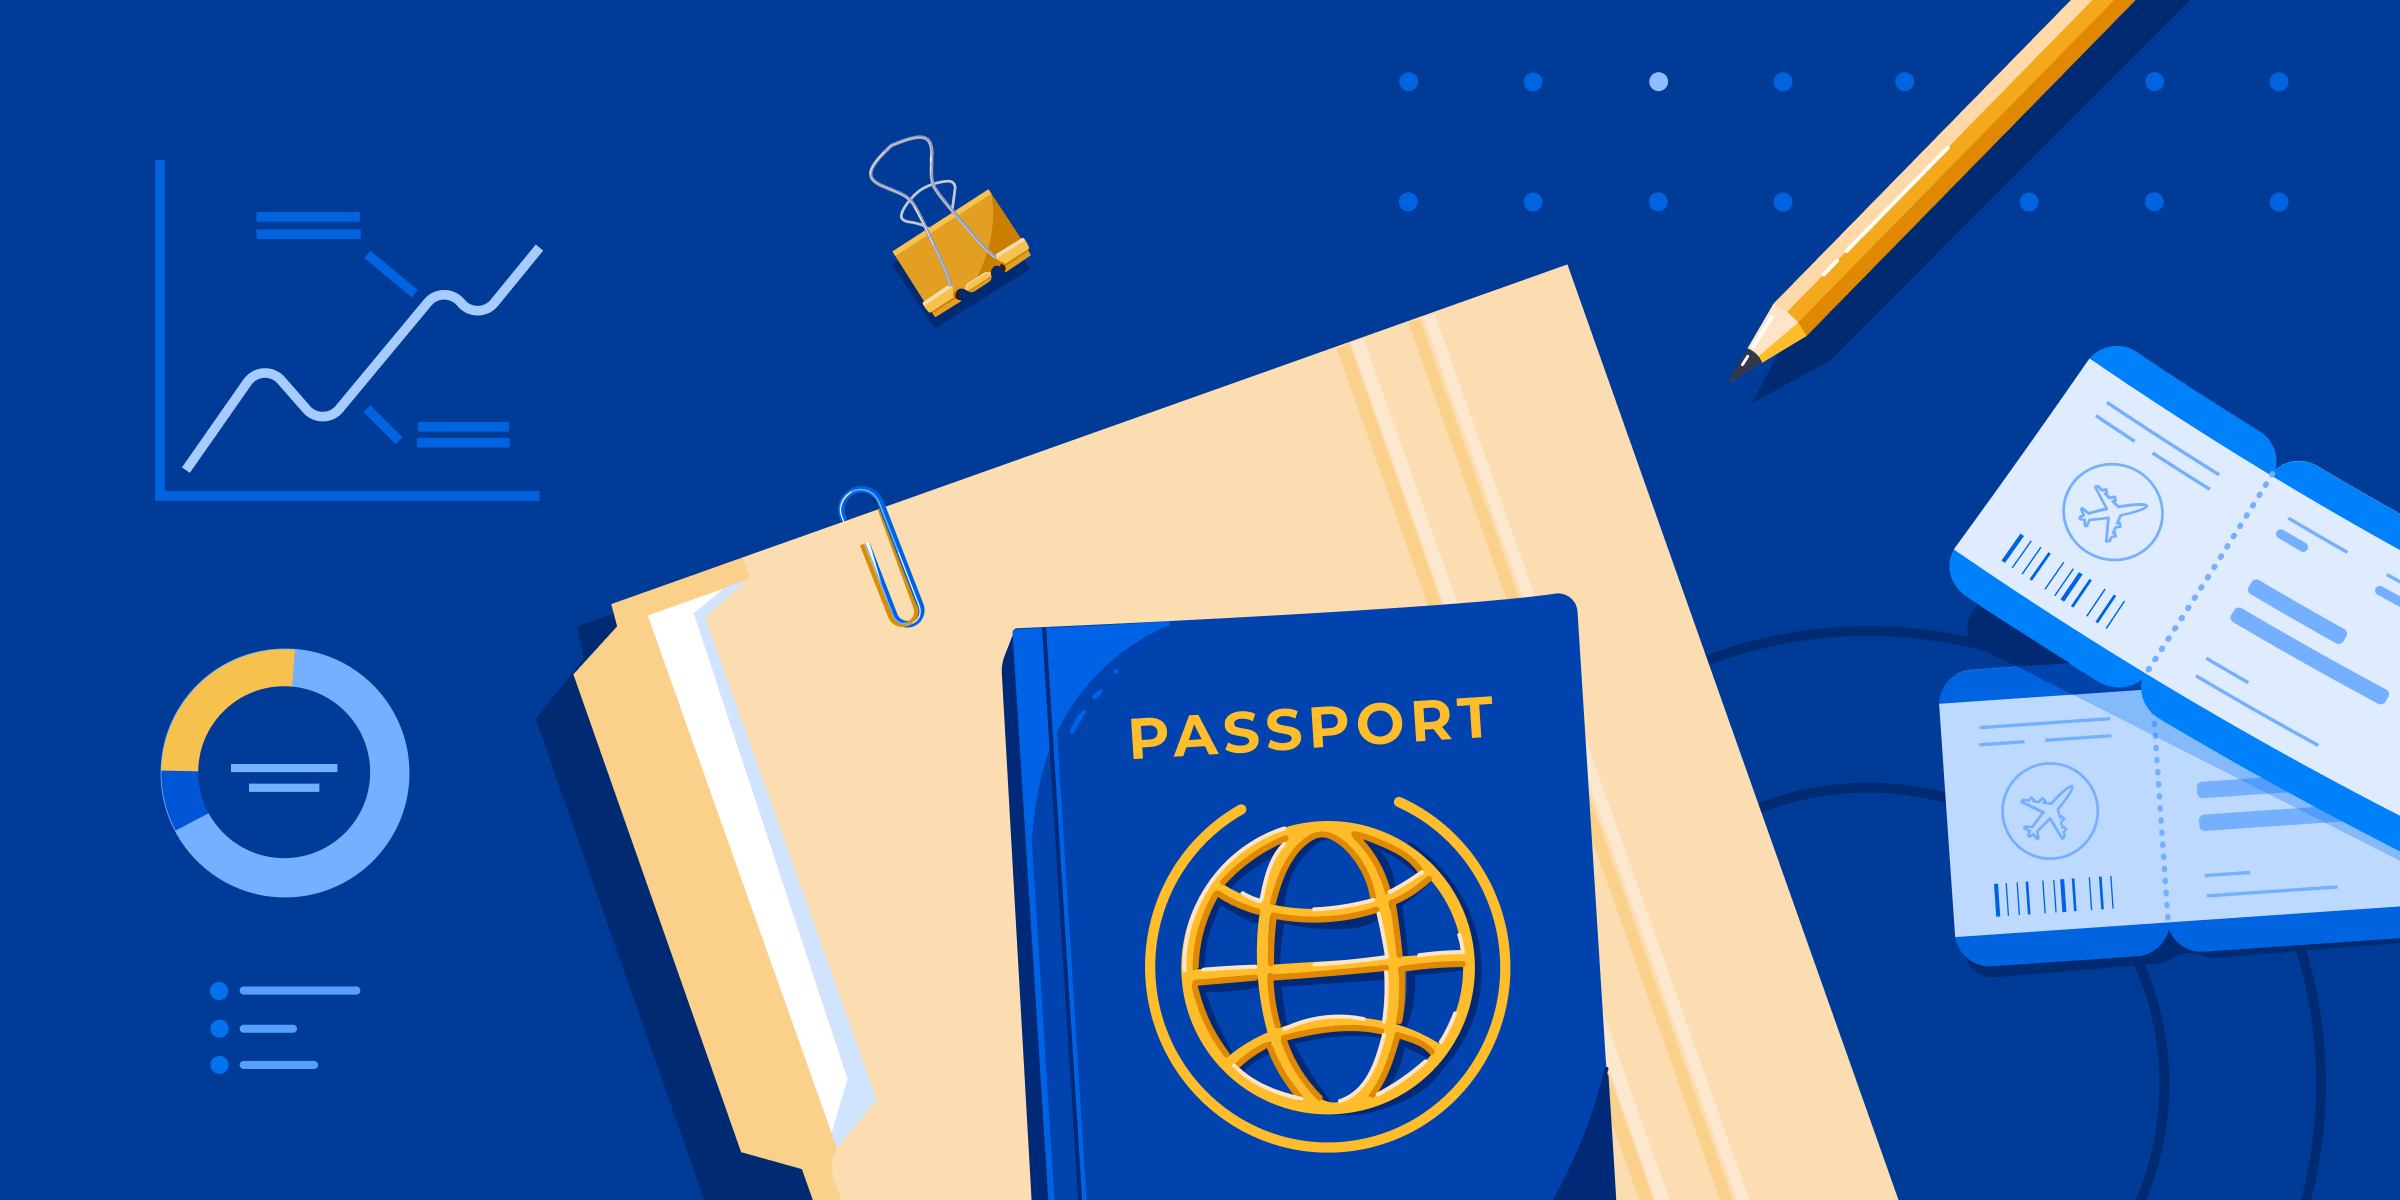 A passport, a file folder, some airplane tickets, and a pencil